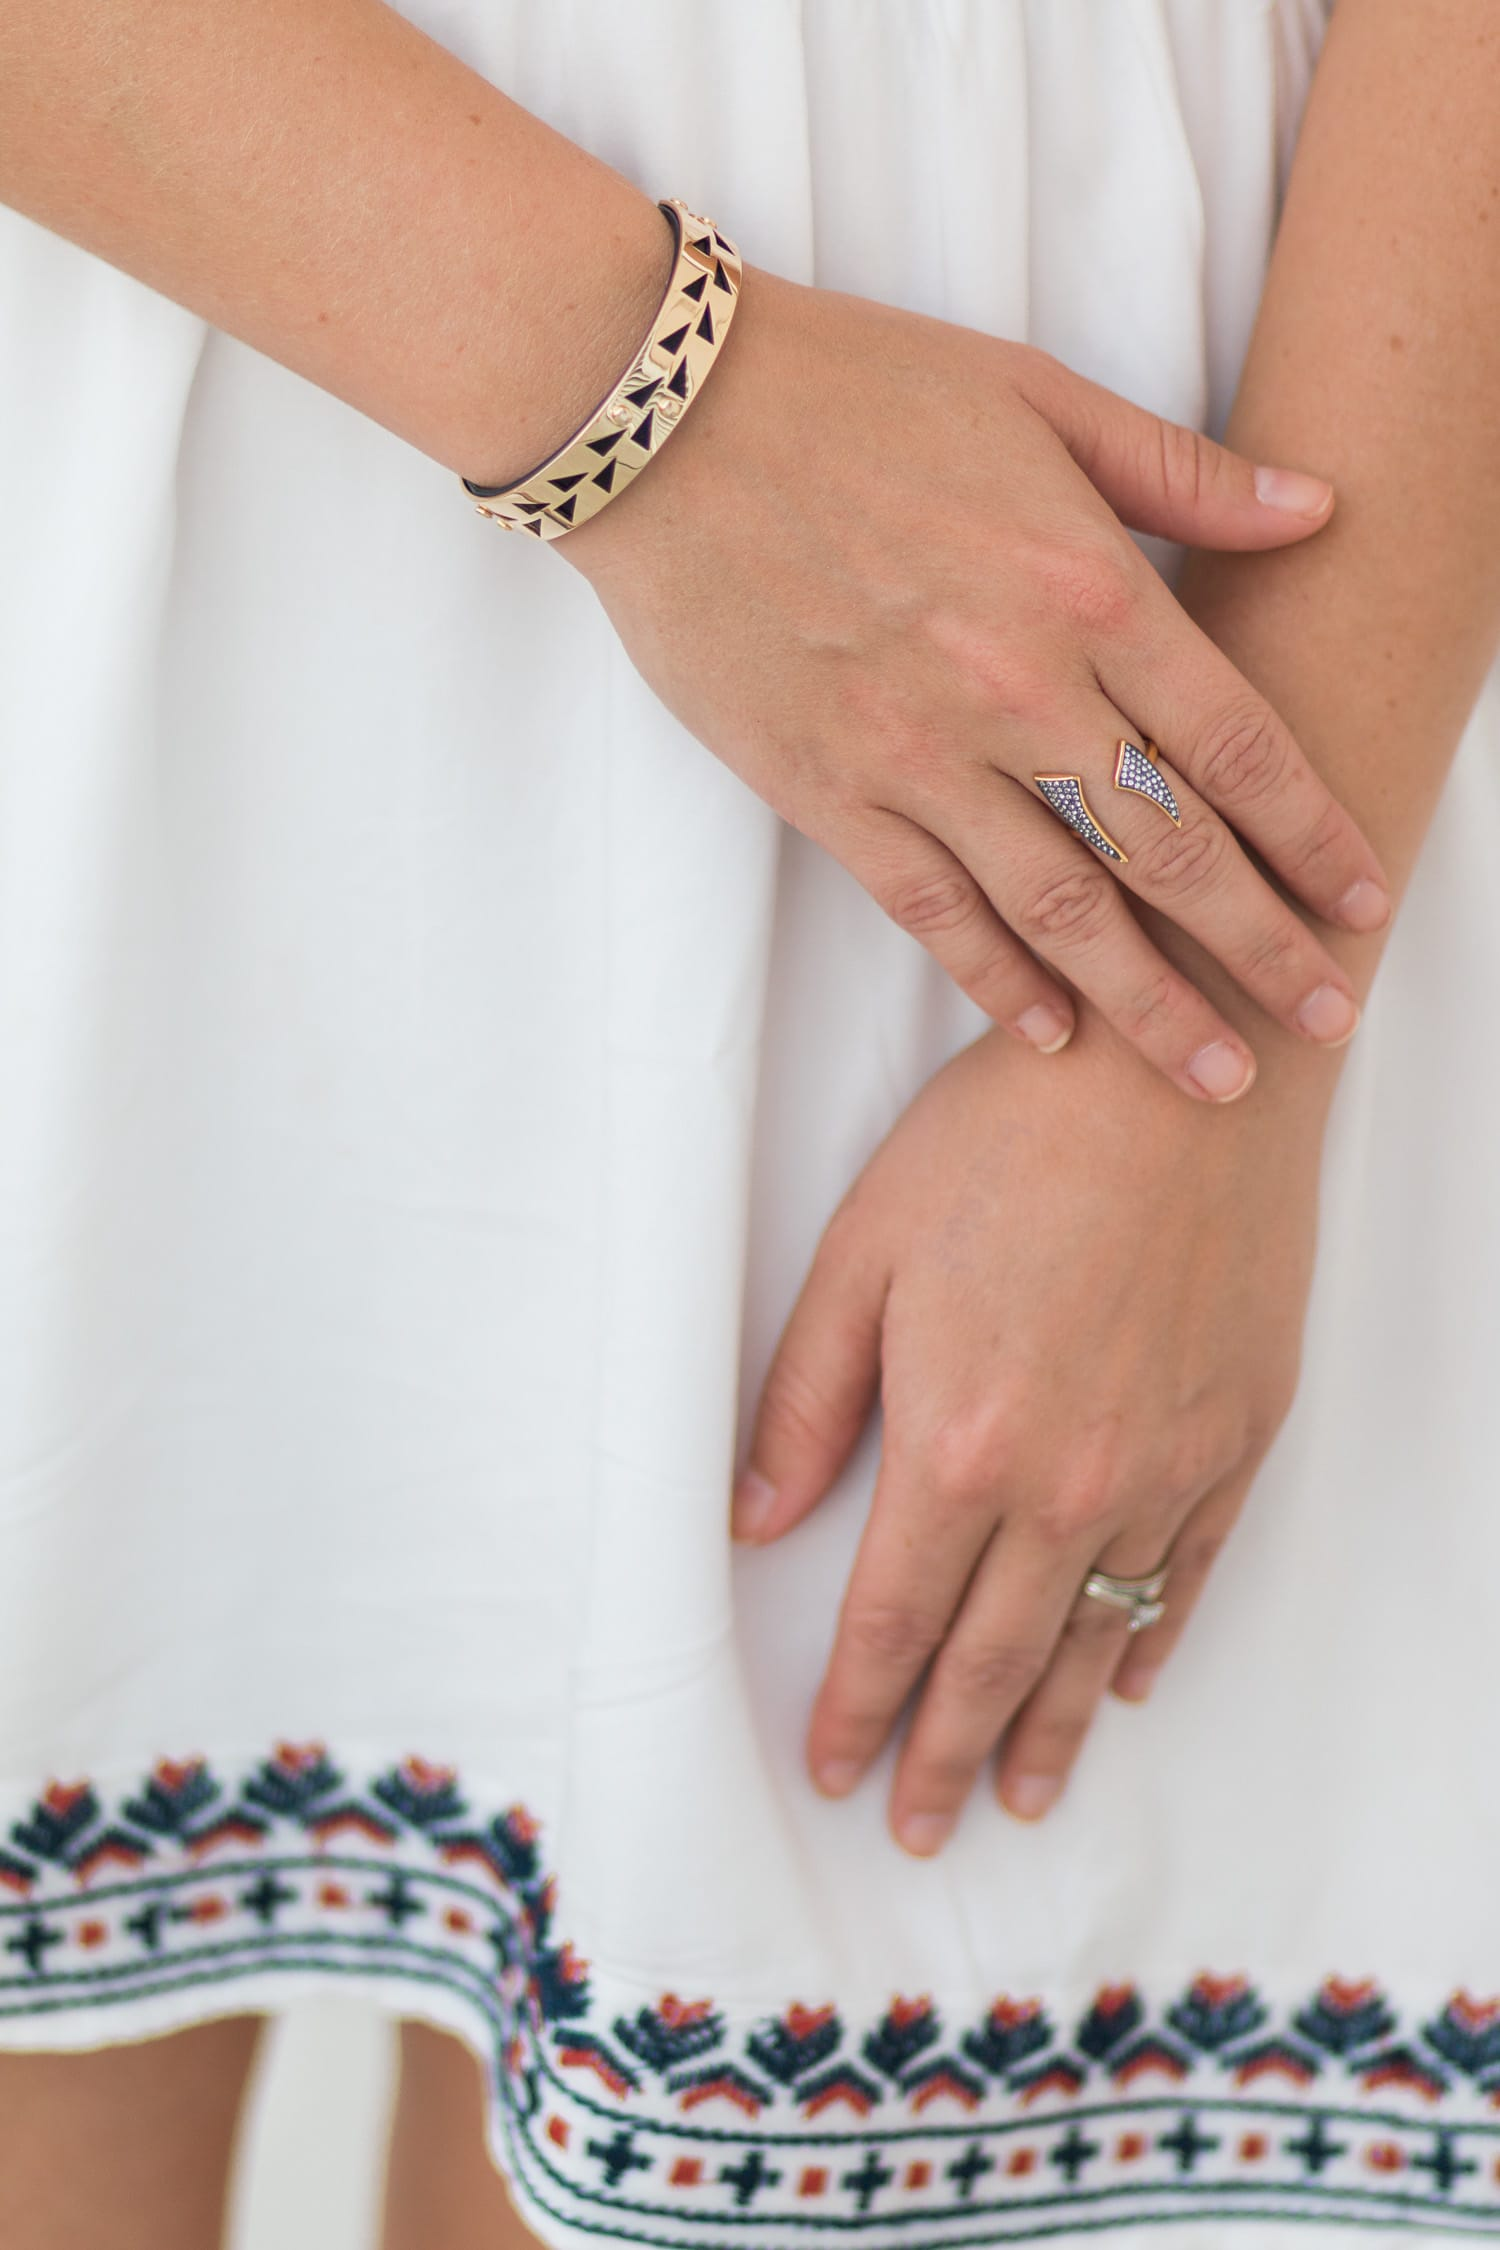 A review of the Stella & Dot fall collection - including the Addison Cuff and Pave Horn Ring- by style blogger Ashley Brooke Nicholas